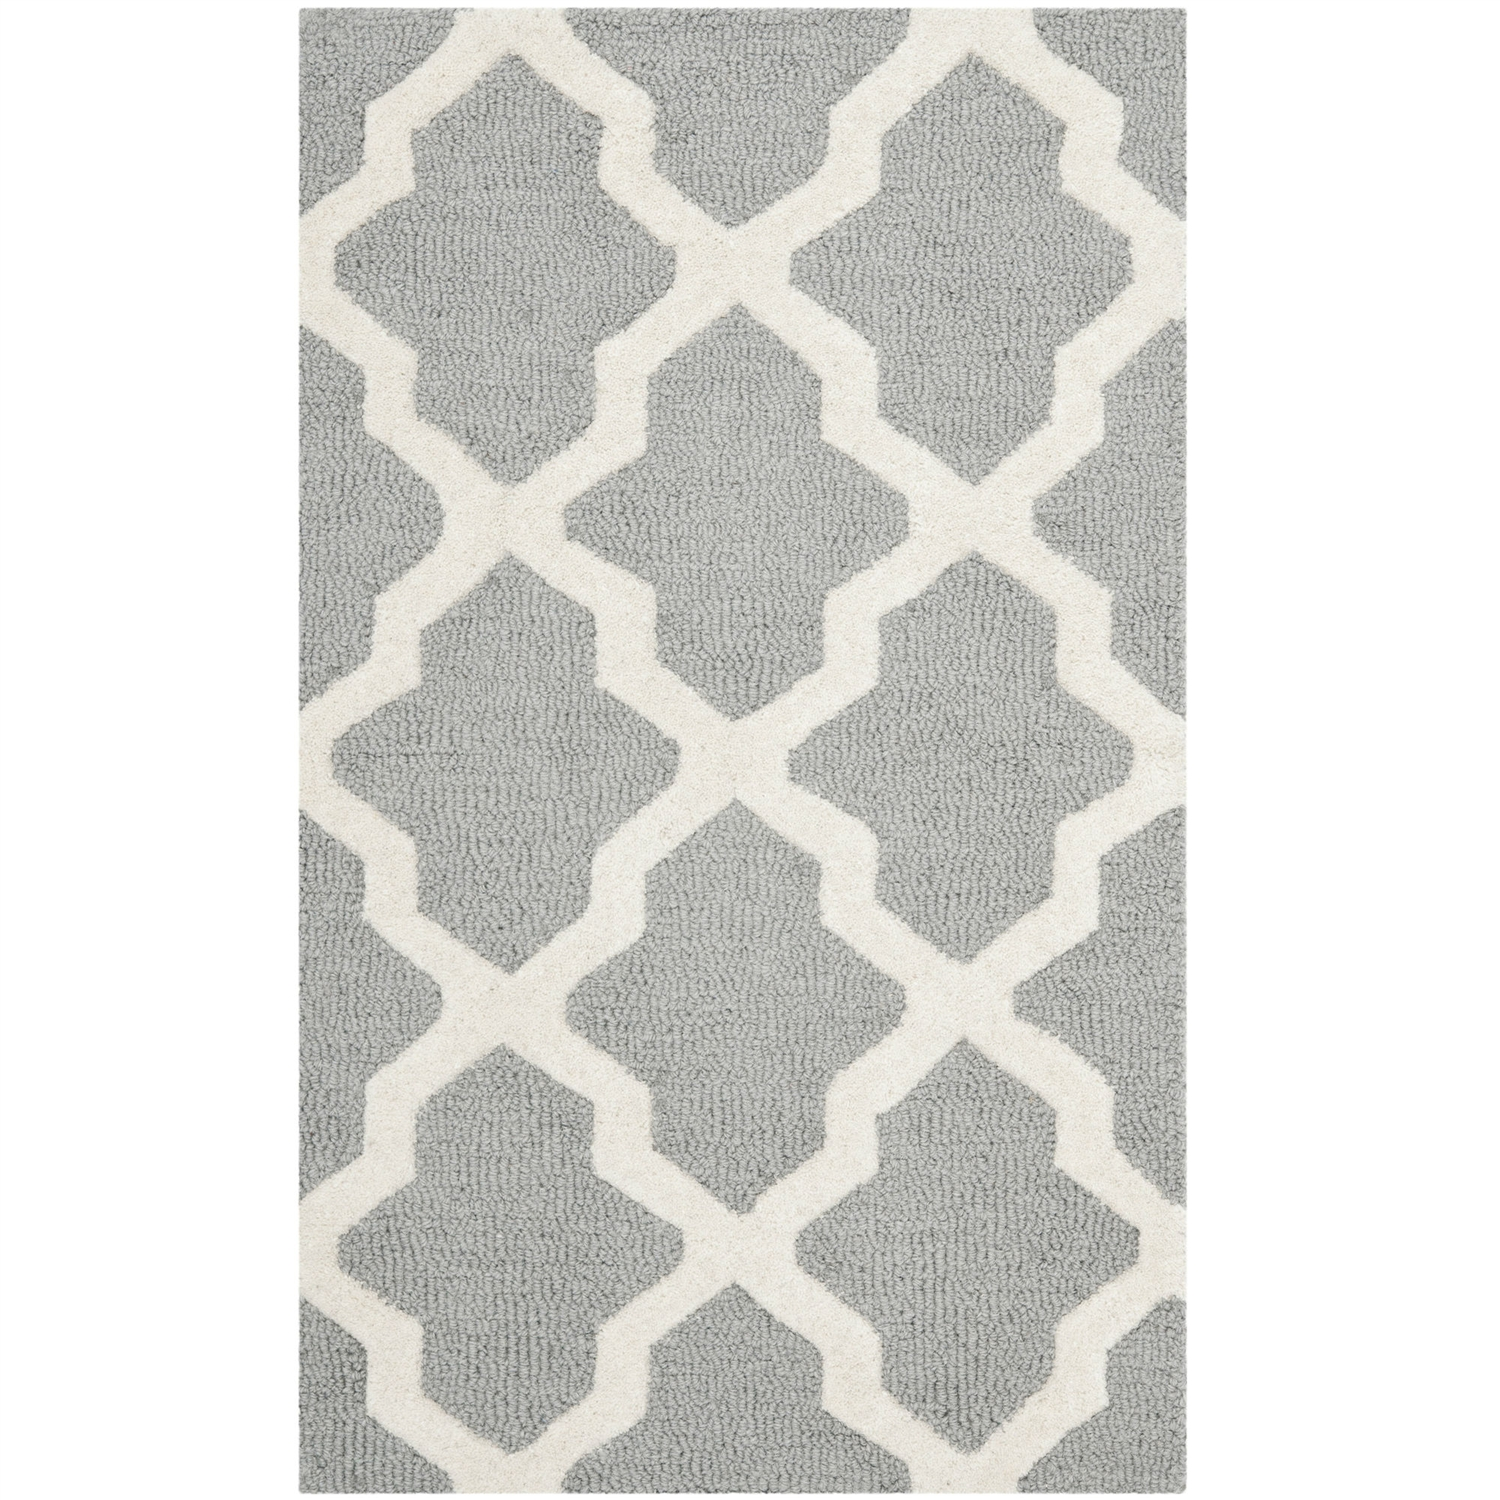 4' x 6' Handmade Wool Area Rug in Silver Grey Ivory Lattice Pattern, SCSR10494 :  This 4' x 6' Handmade Wool Area Rug in Silver Grey Ivory Lattice Pattern would be a great addition to your home. It is homemade with a tufted technique and is eco-friendly. Primary Pattern: Geometric; Type of Backing: Cotton; Reversible: No; Rug Pad Needed: Yes; Eco-Friendly: No; Recycled Content: 0%; Outdoor Use: No; Product Care: Professional cleaning is recommended; Country of Manufacture: India.